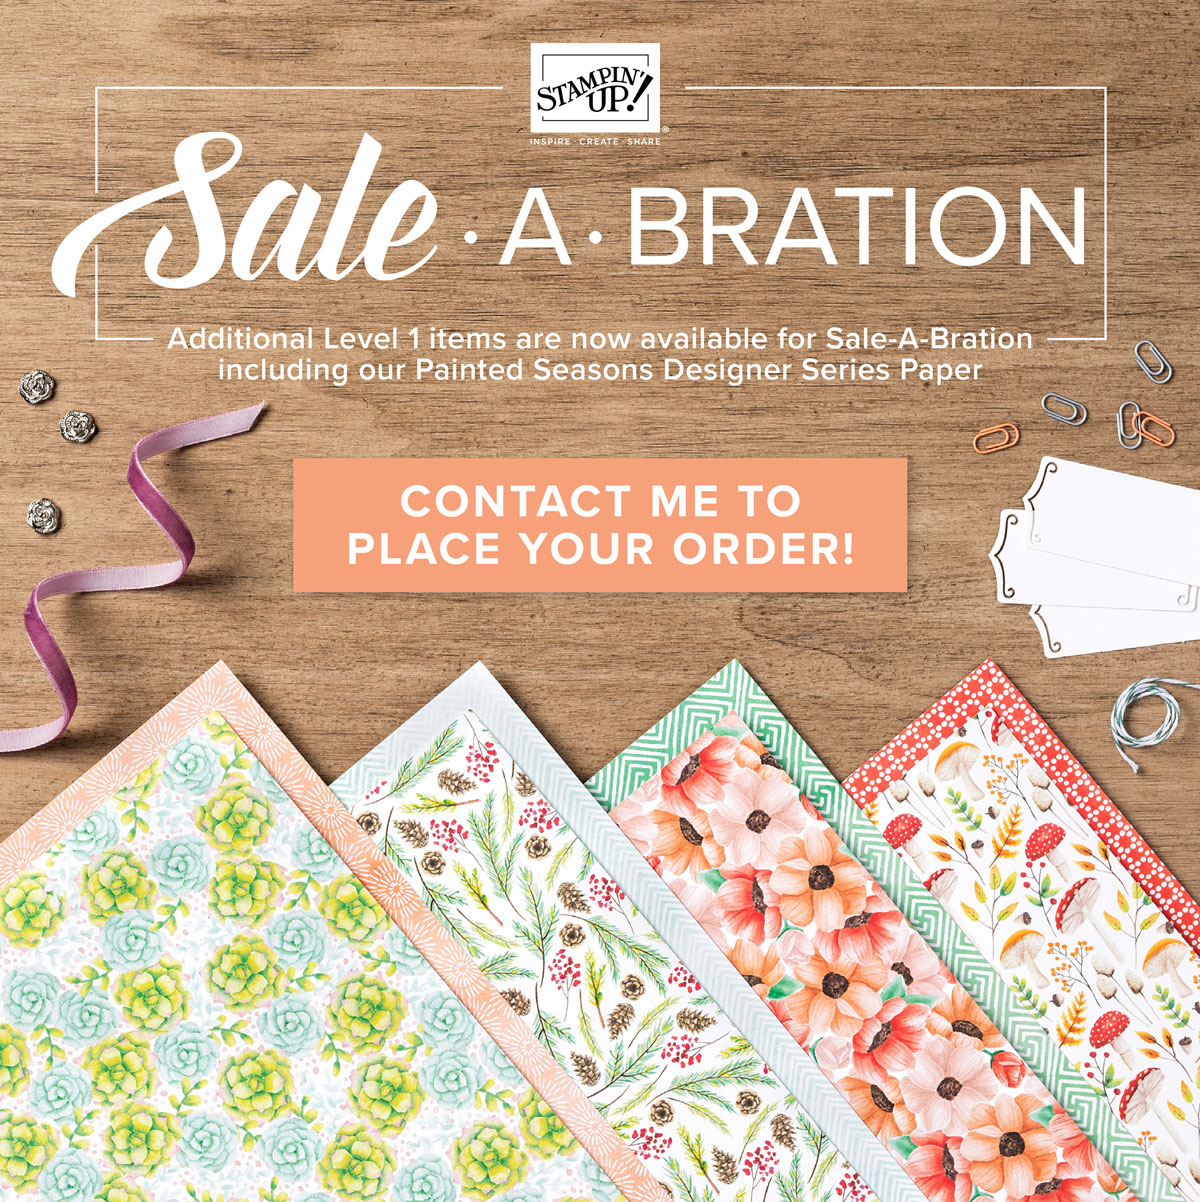 Earn free Paper Craft Supplies with every $50 in purchases through March 31, 2019. Shop 24/7 with Meagan Justus of Inkredible Techniques